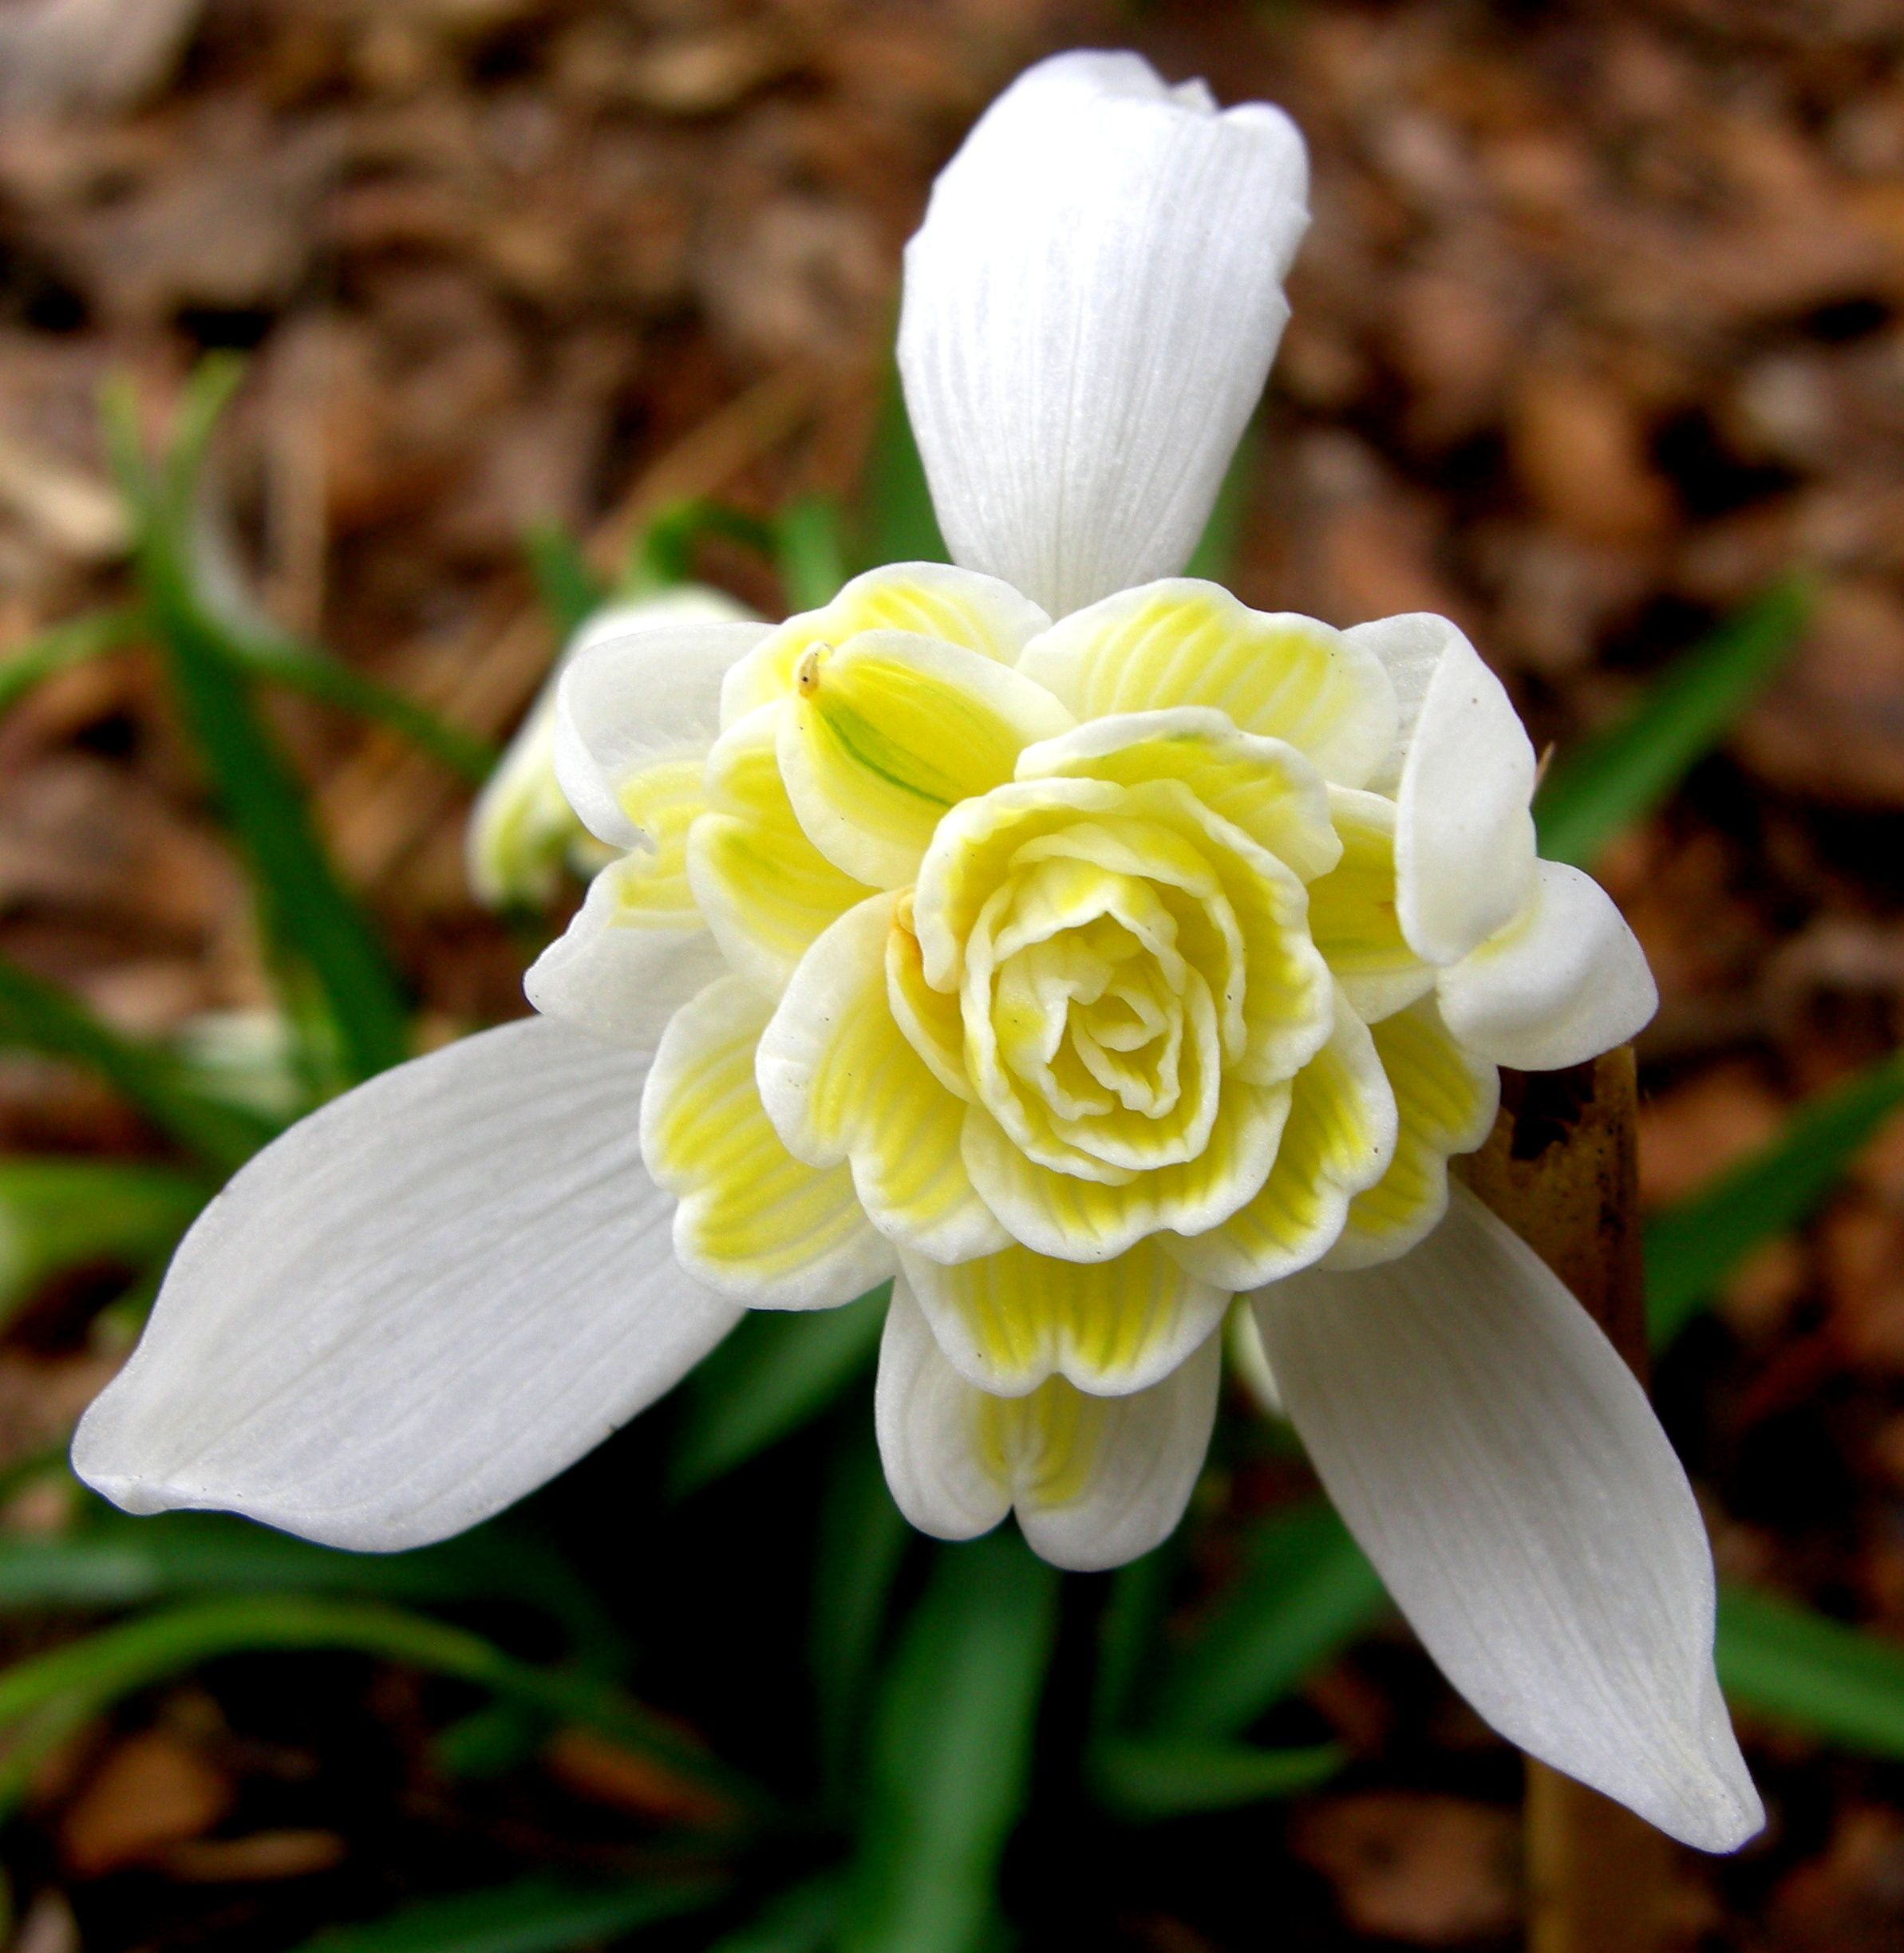 Lady Elphinstone Is The Only Double Yellow Description From Carolynsshadegardens Com I Searched For This On Bi Rare Flowers Bulbous Plants Beautiful Flowers